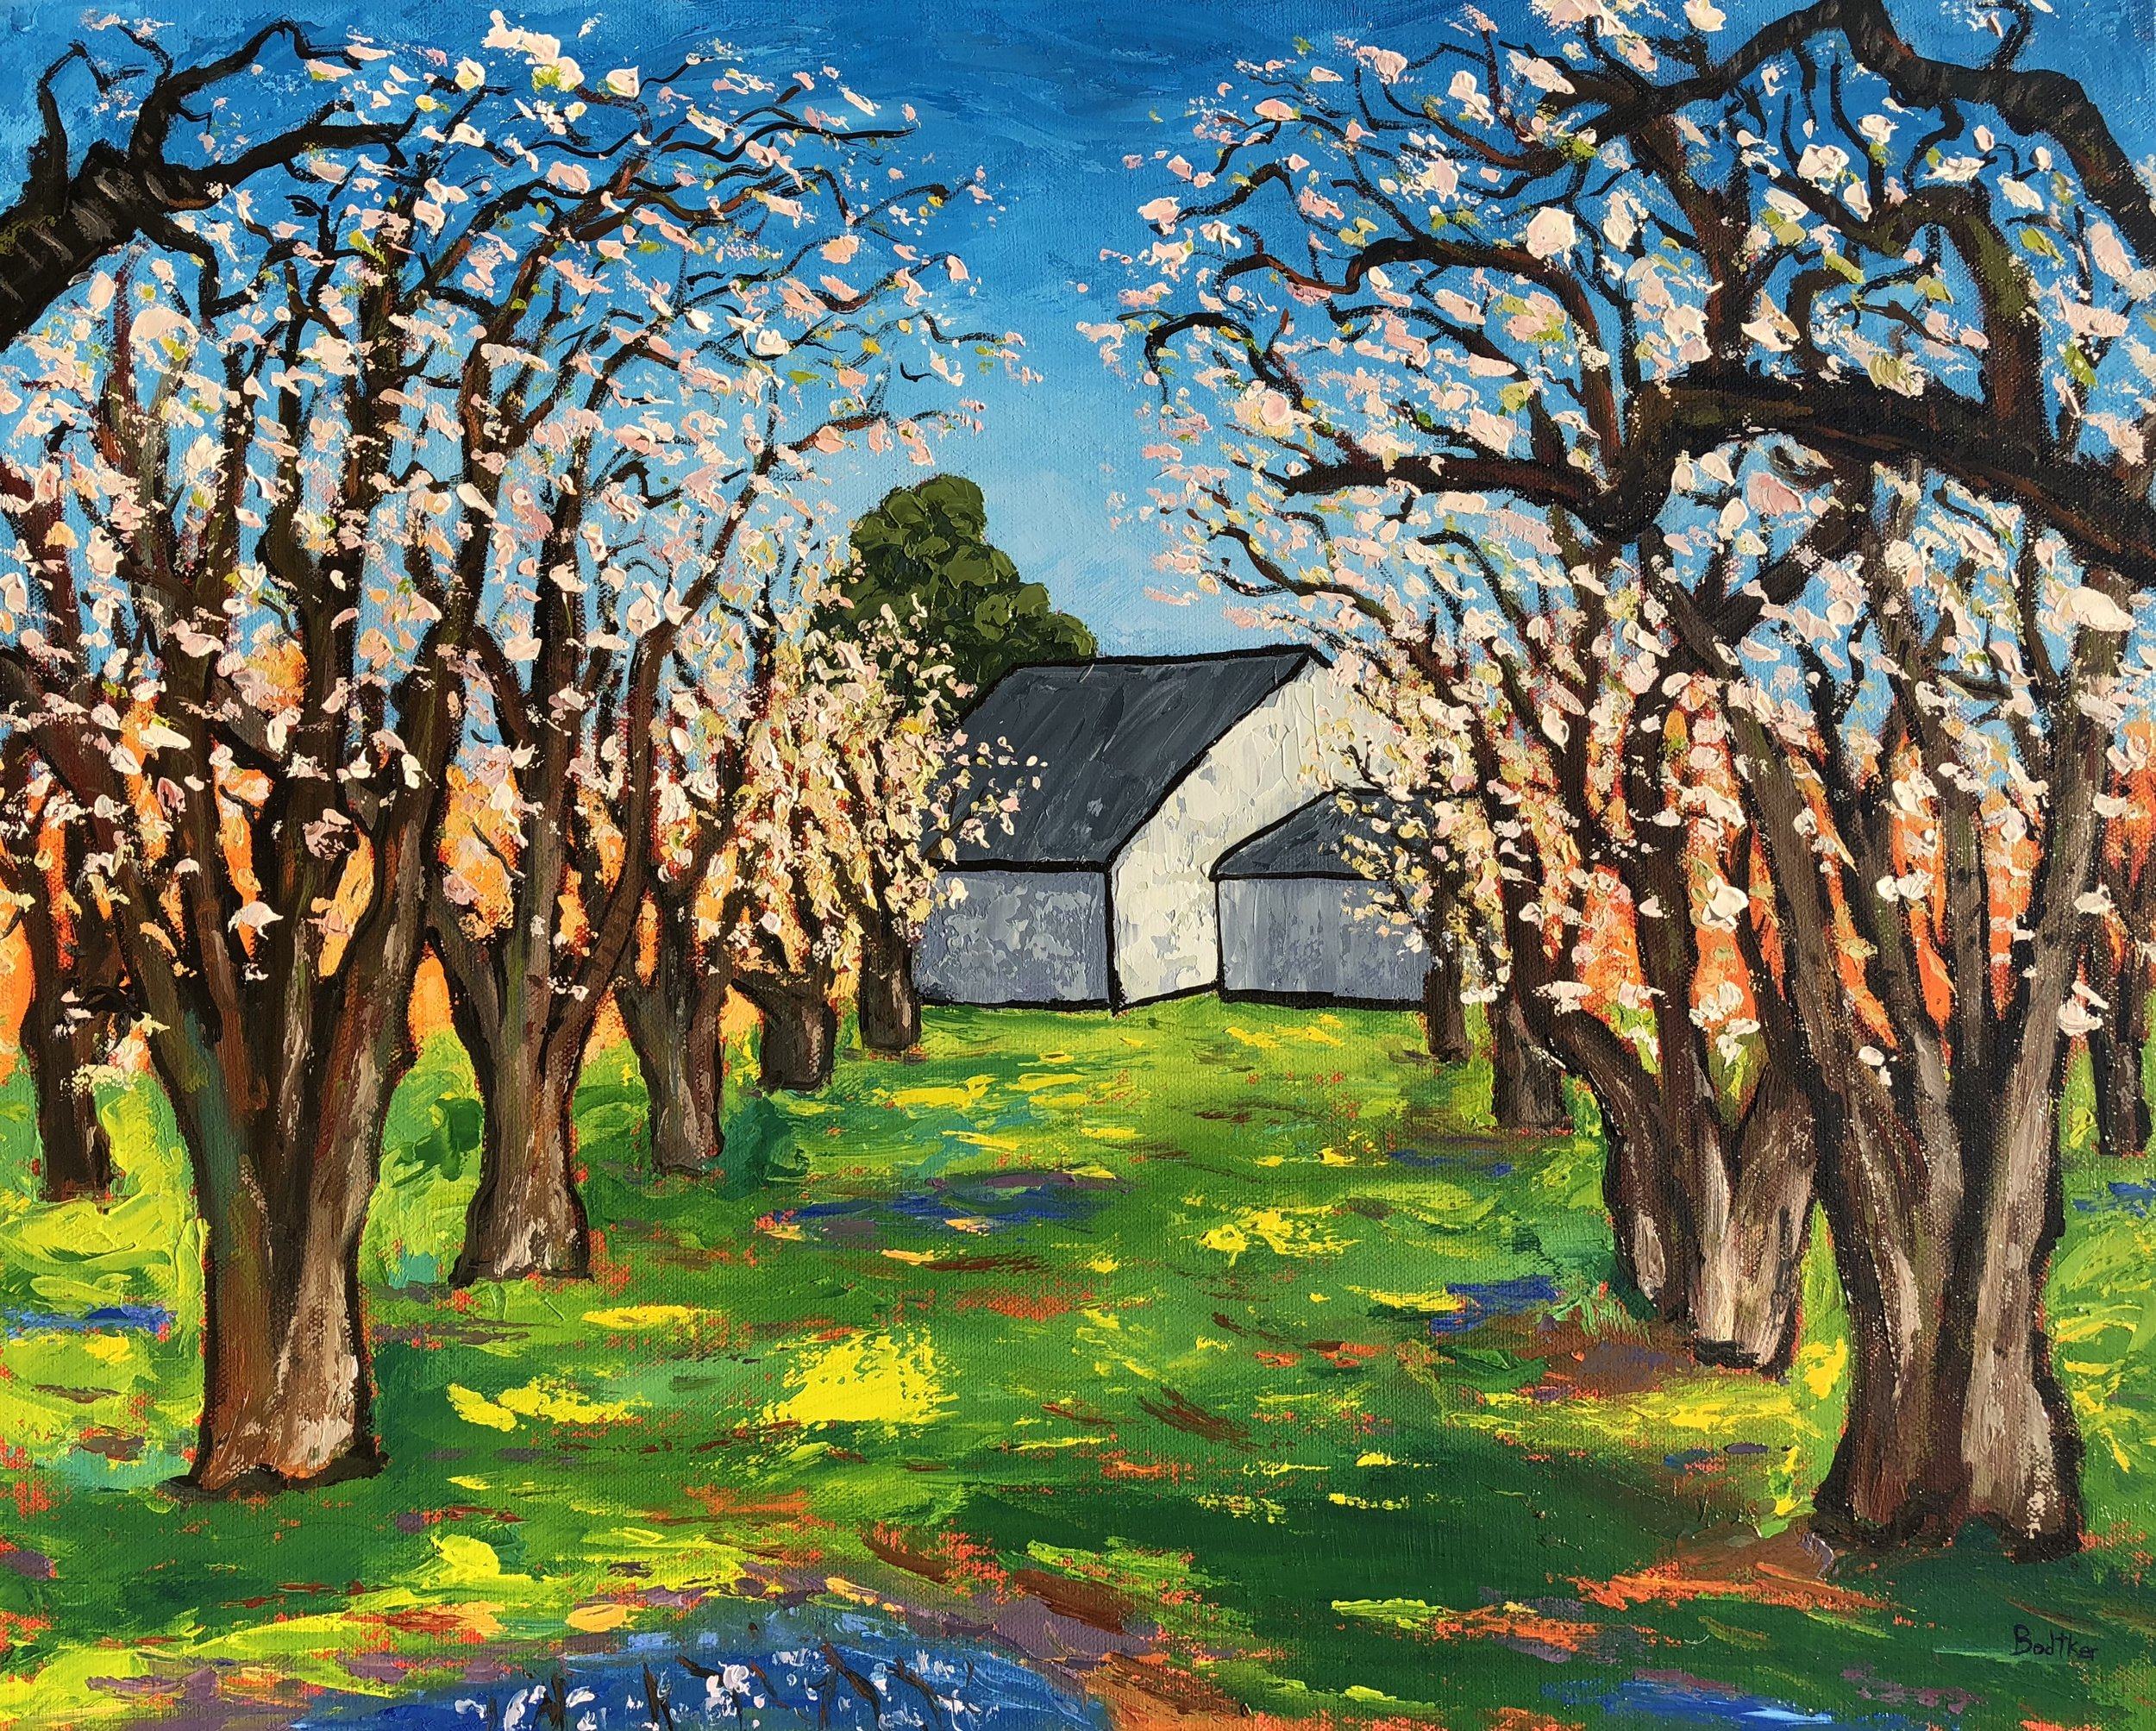 Blossoming Orchard and Barn - 16x20